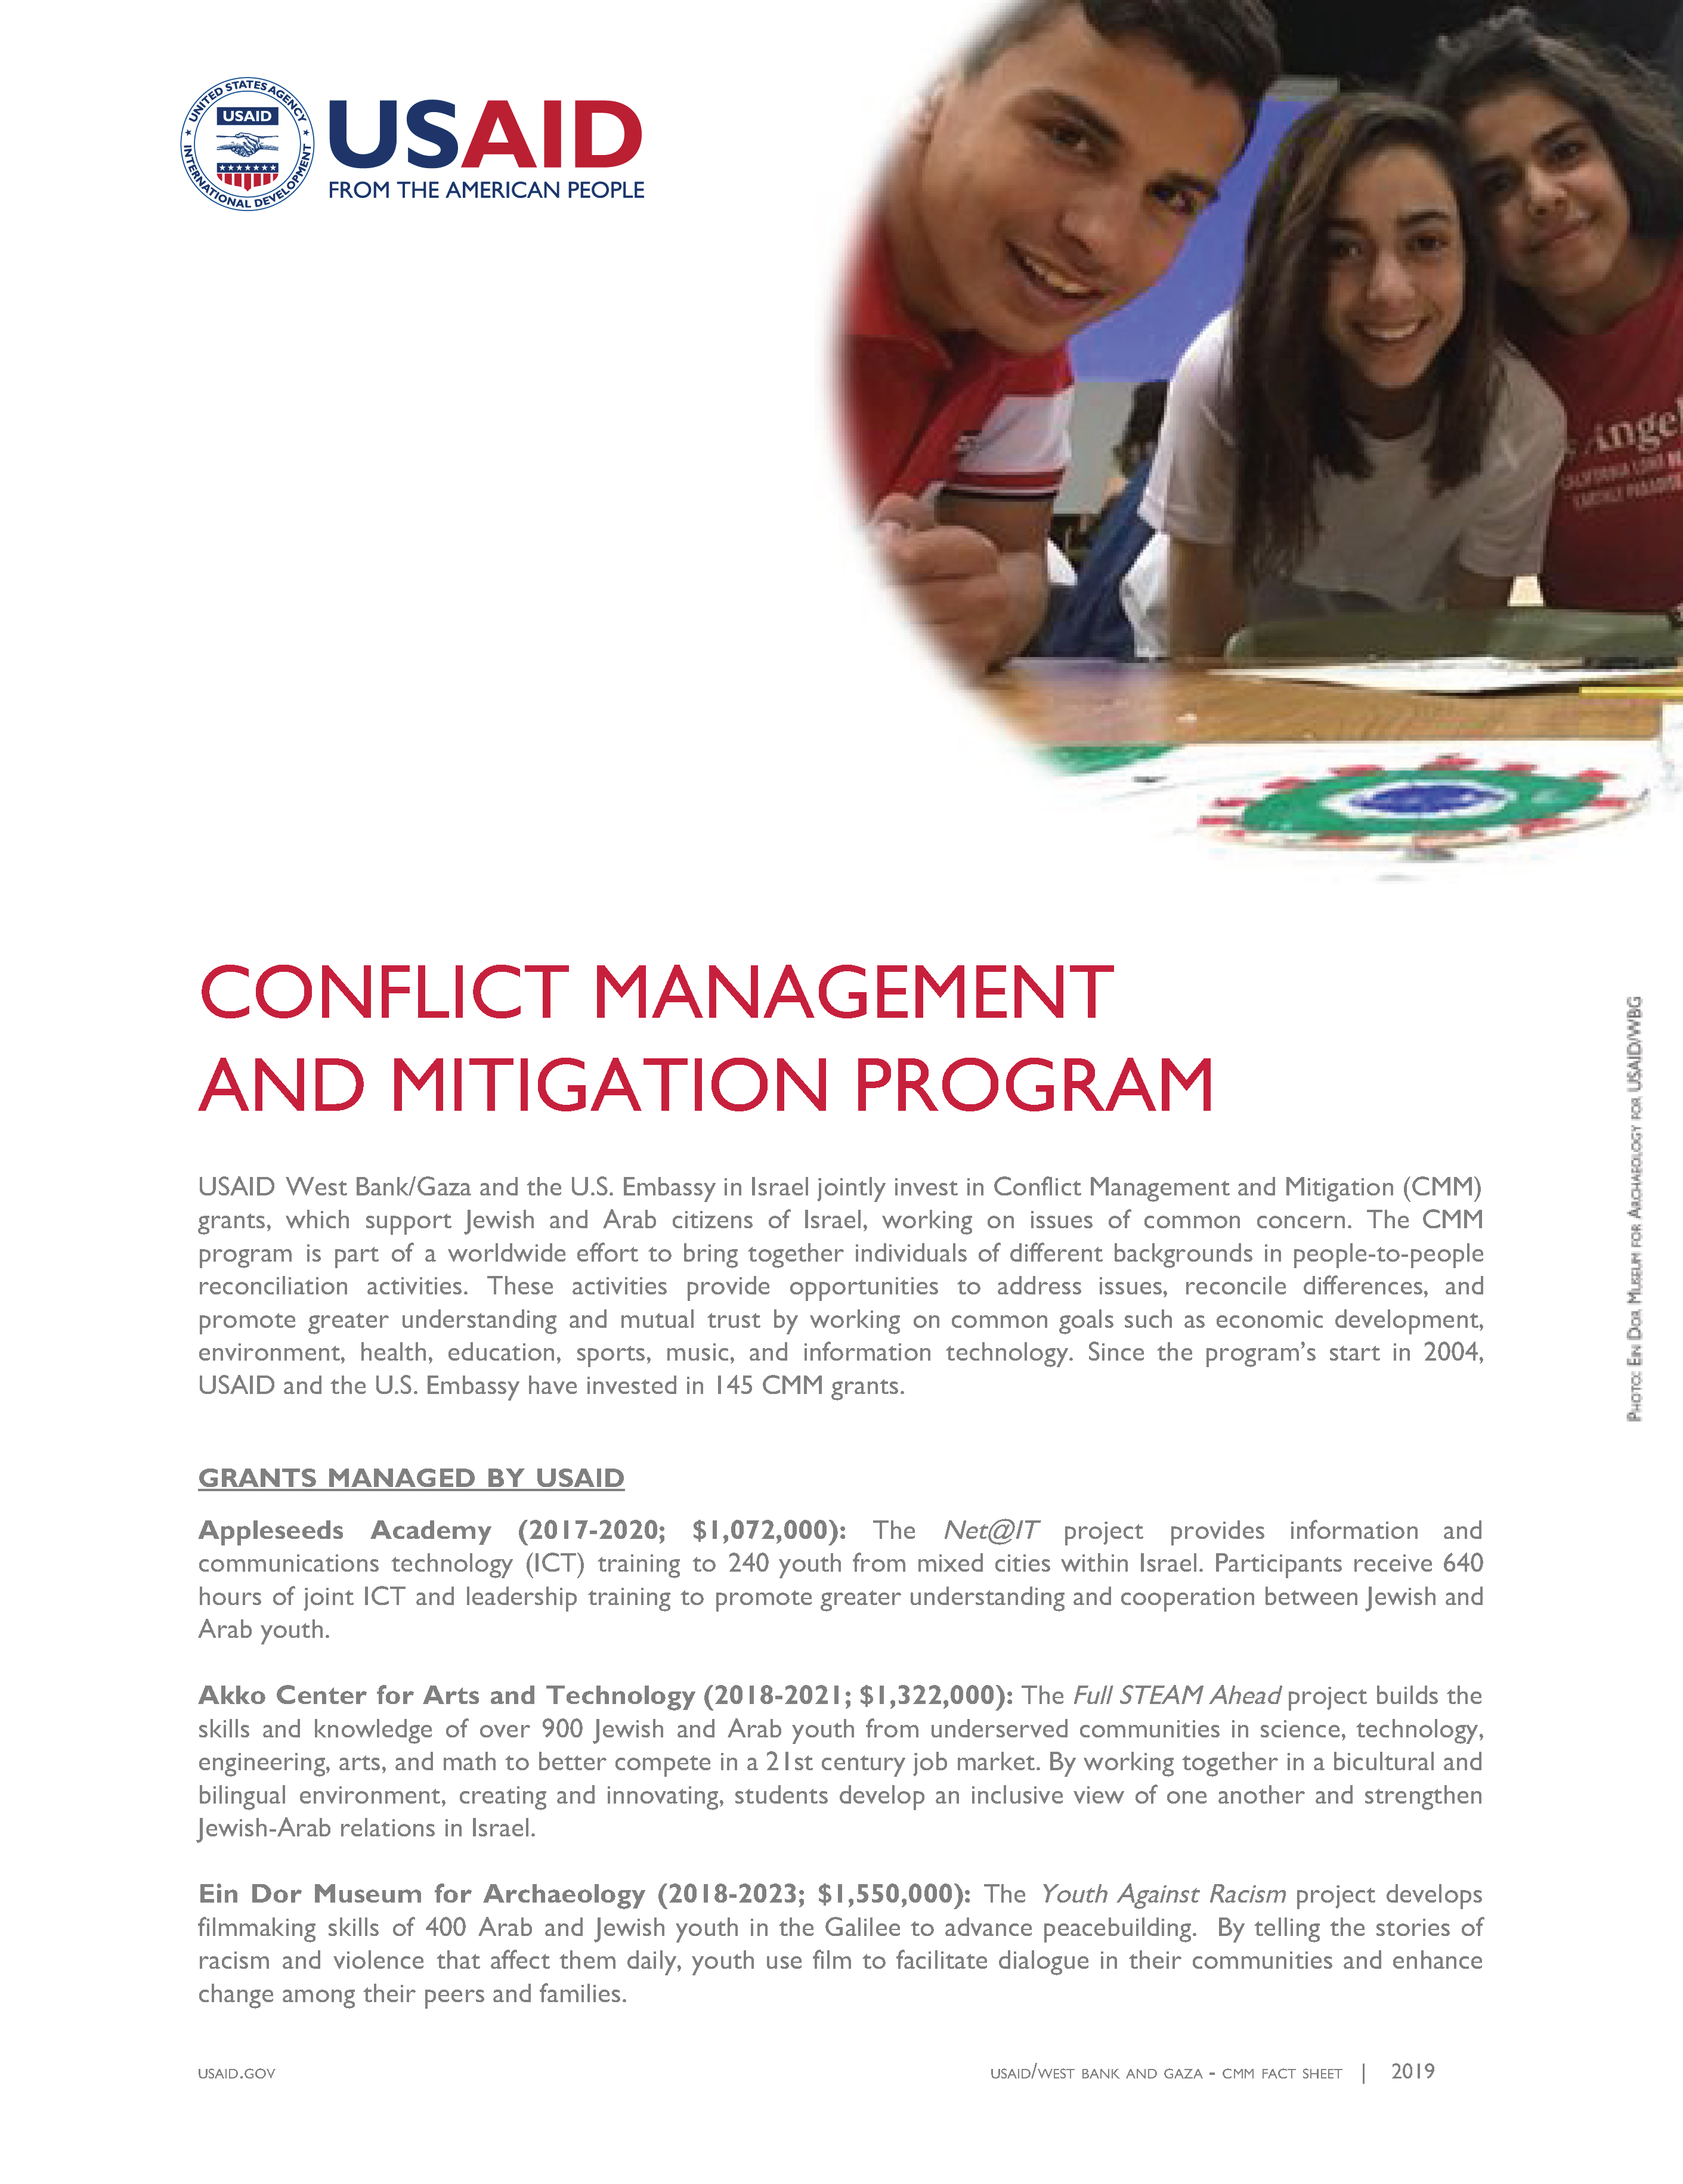 Conflict Management and Mitigation Fact Sheet 2019-2020